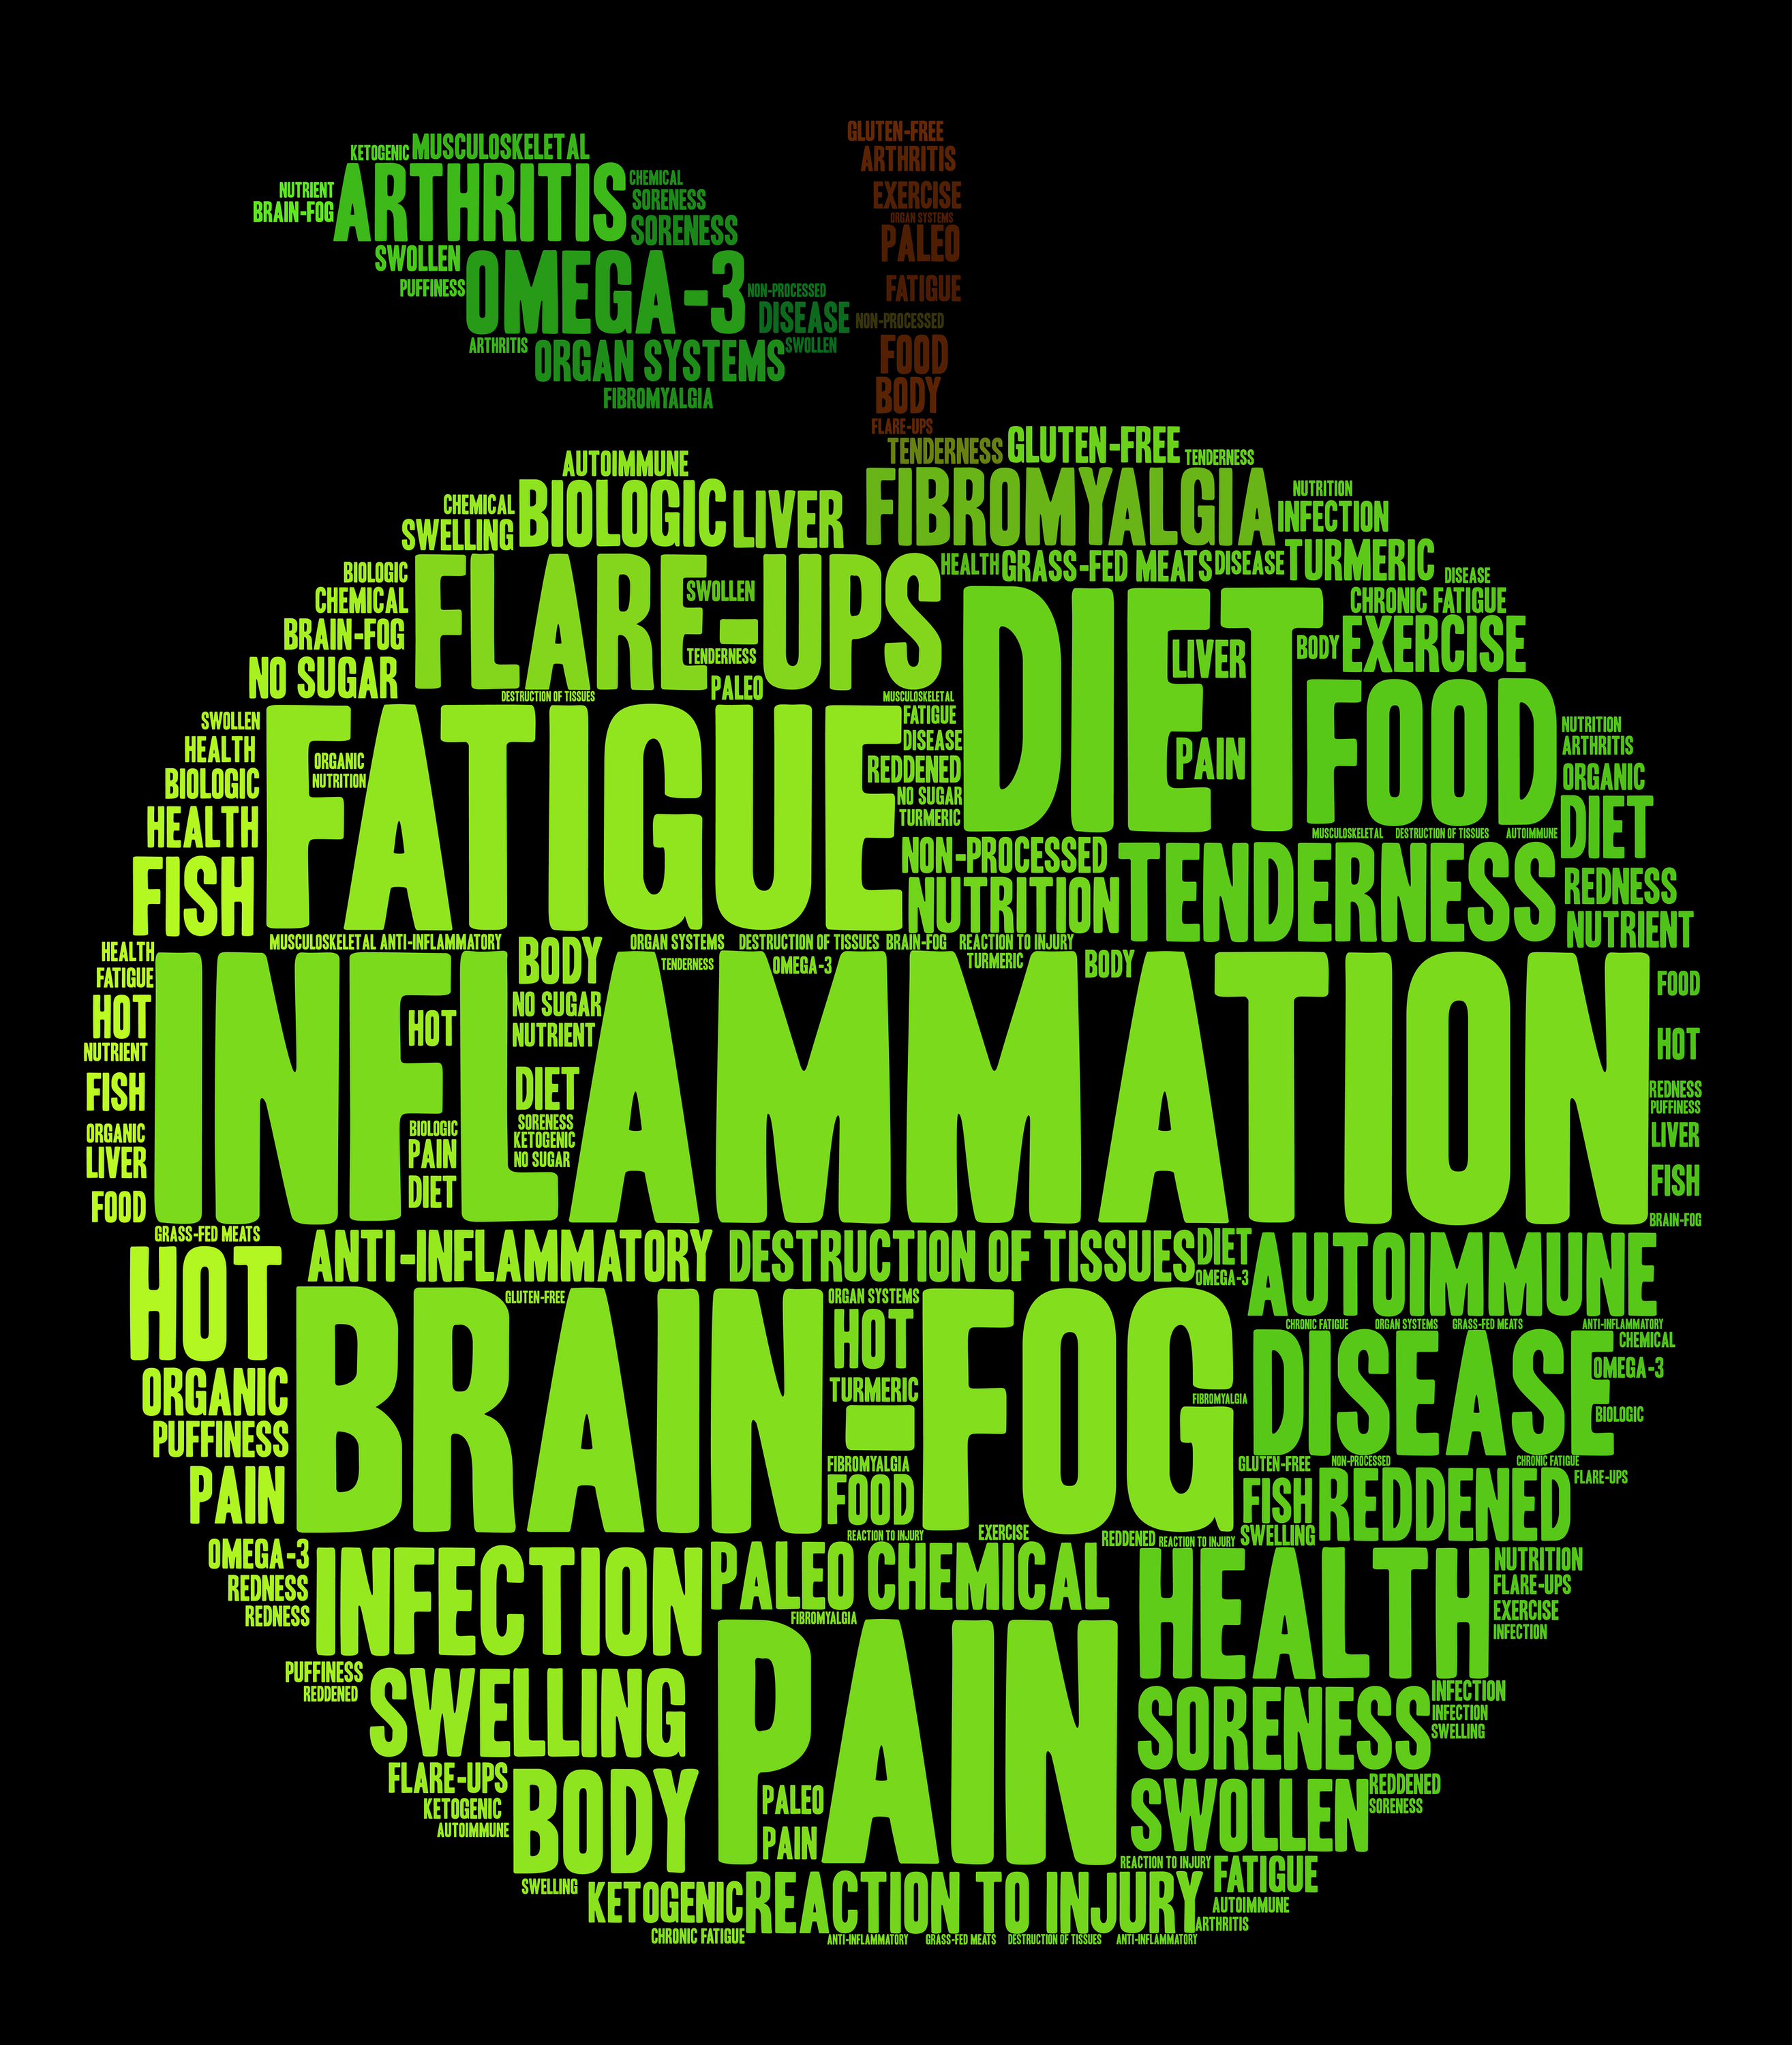 'Let Food Be Thy Medicine' – Eating Well with Chronic Pain